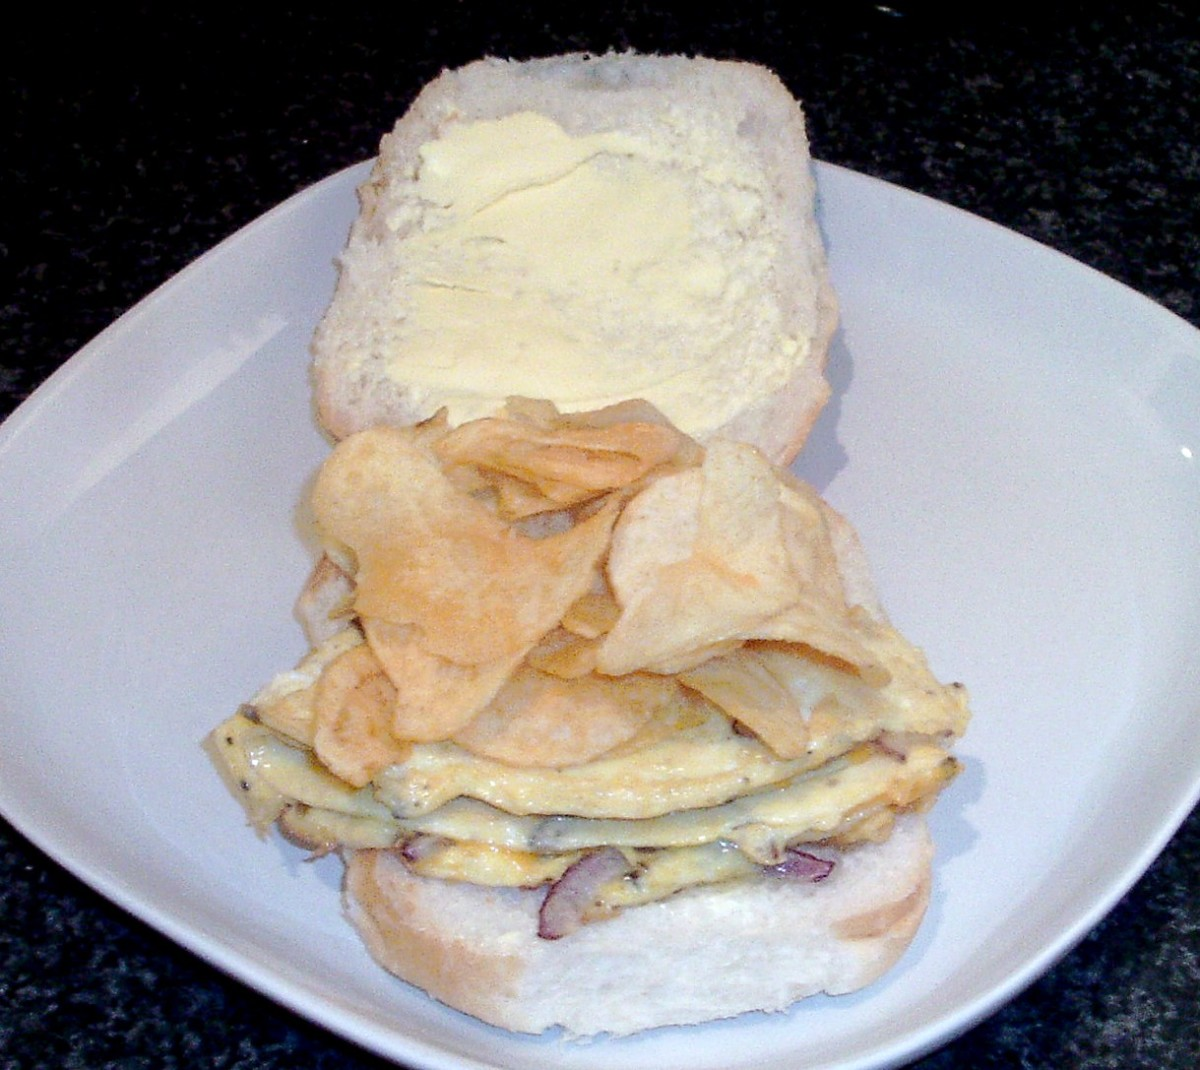 Cheese and onion crisps are laid on omelette